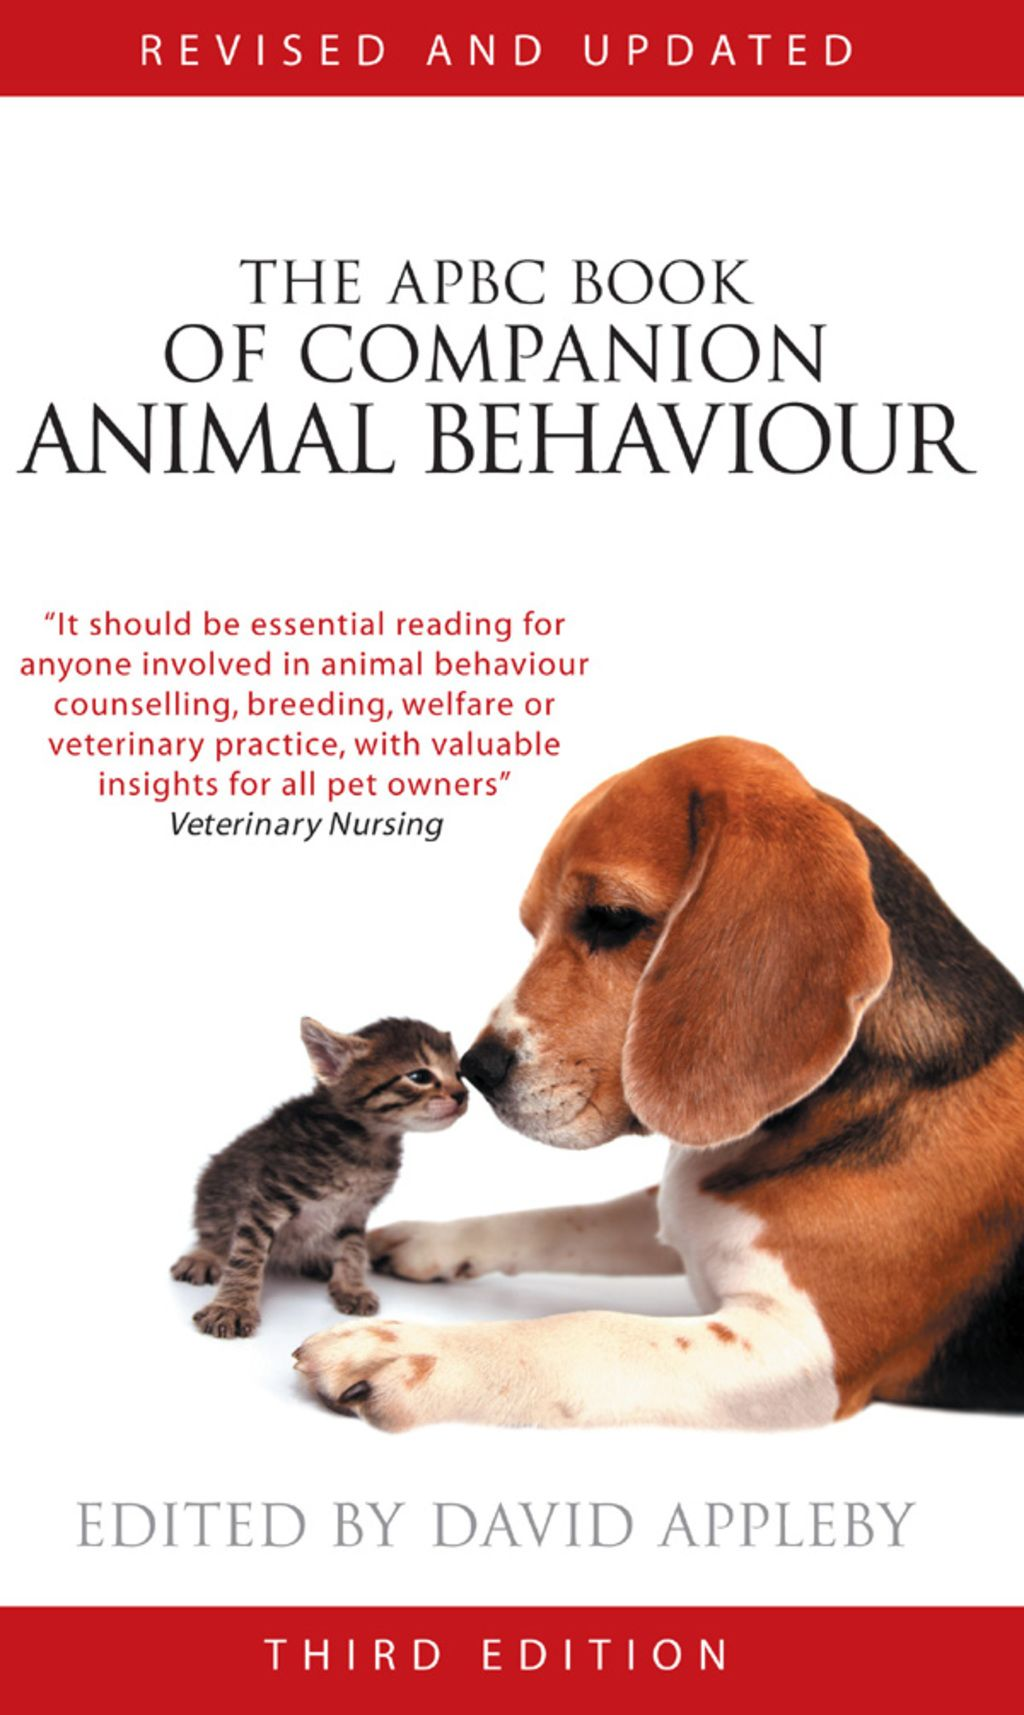 The Apbc Book Of Companion Animal Behaviour Ebook Products In